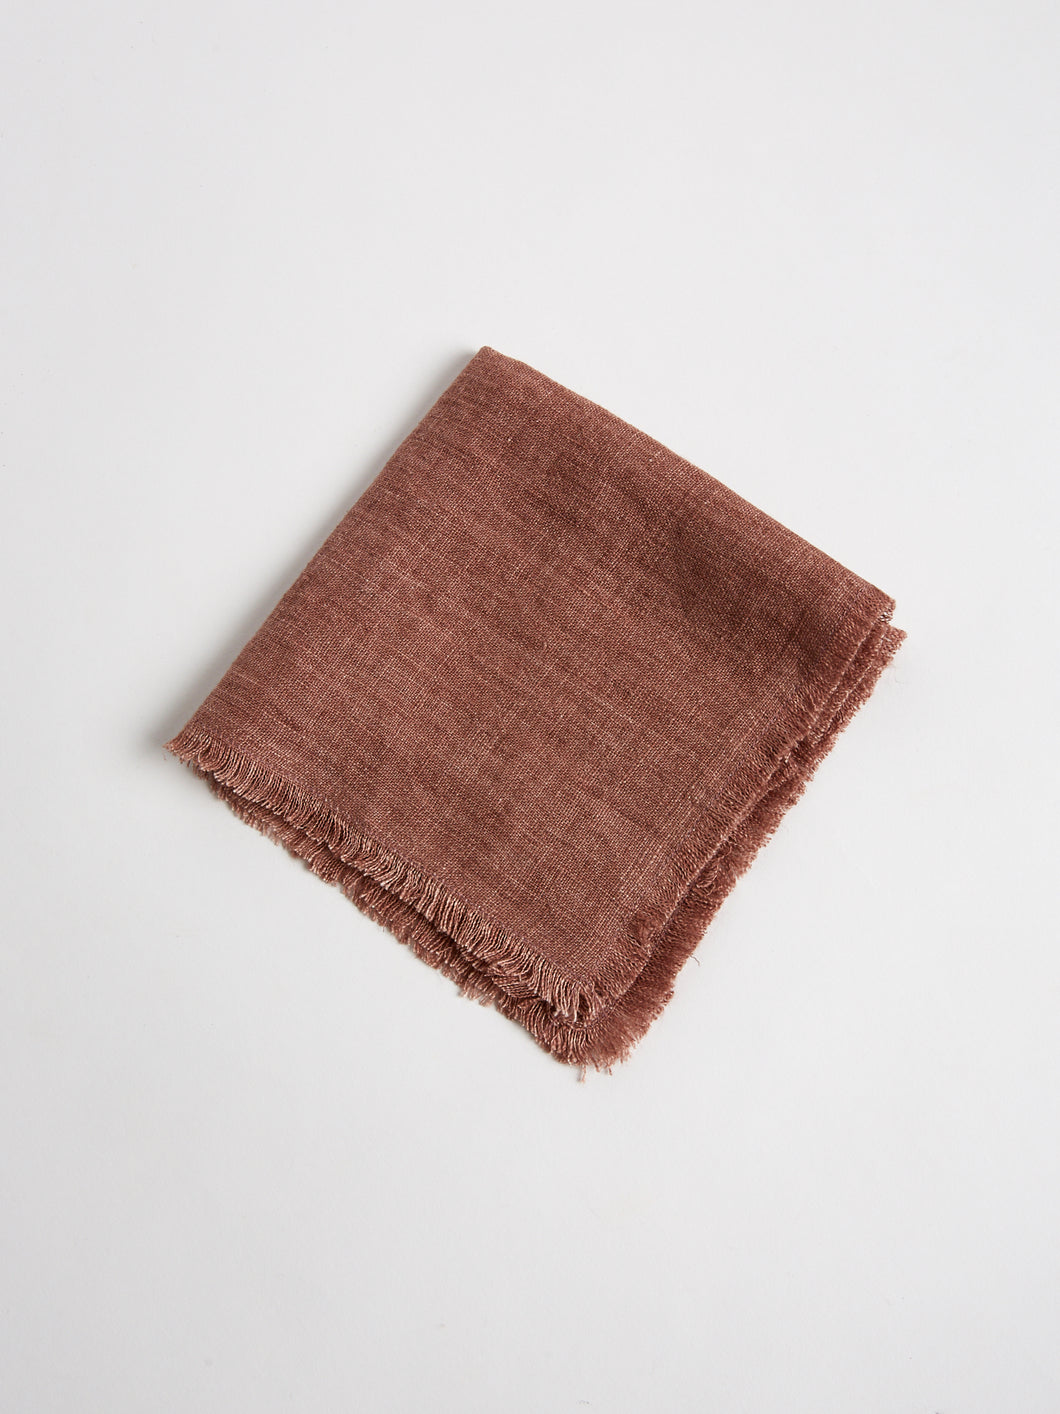 Stonewashed Linen Cocktail Napkin in Ash Rose